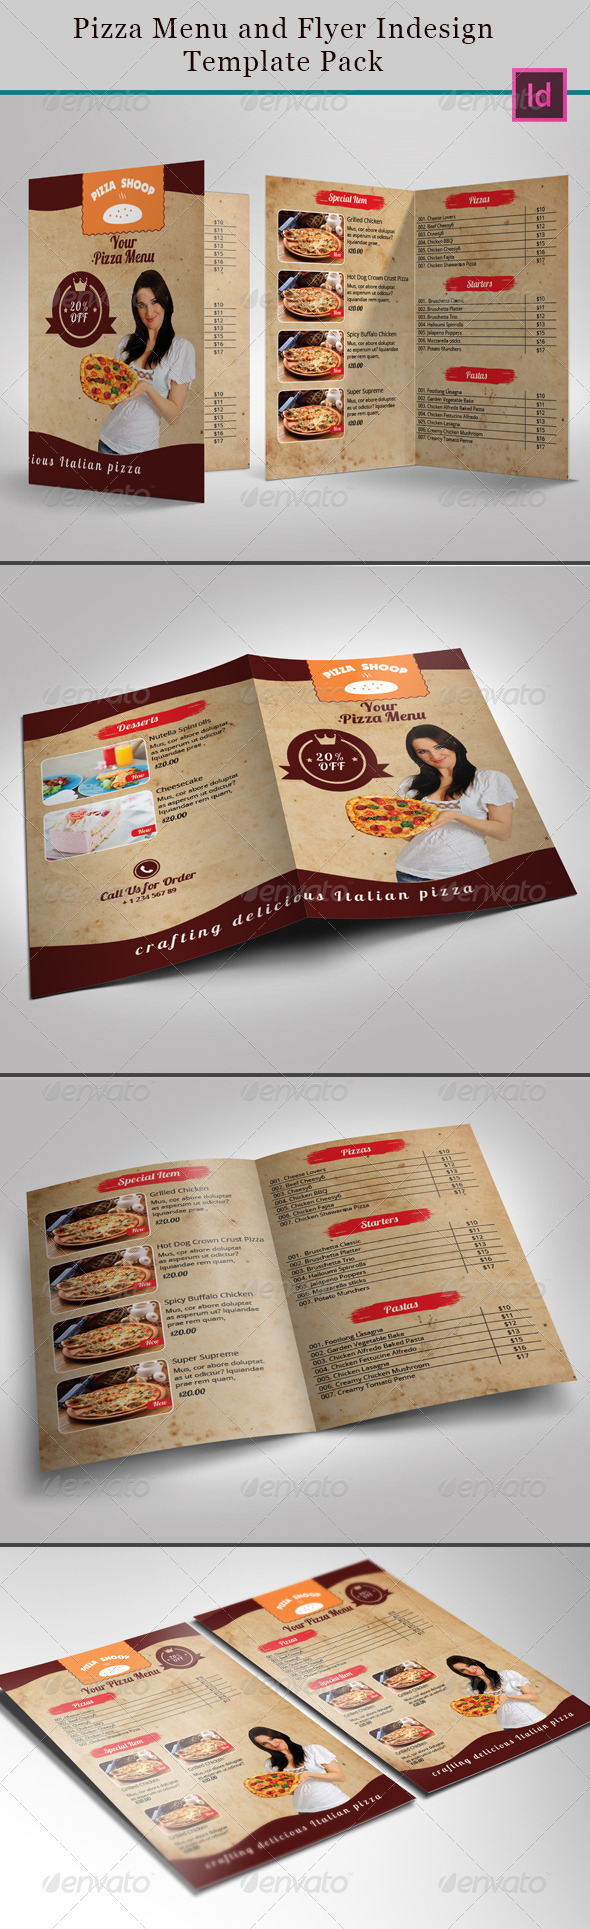 GraphicRiver Pizza Menu and Flyer Indesign Template Pack 7328387